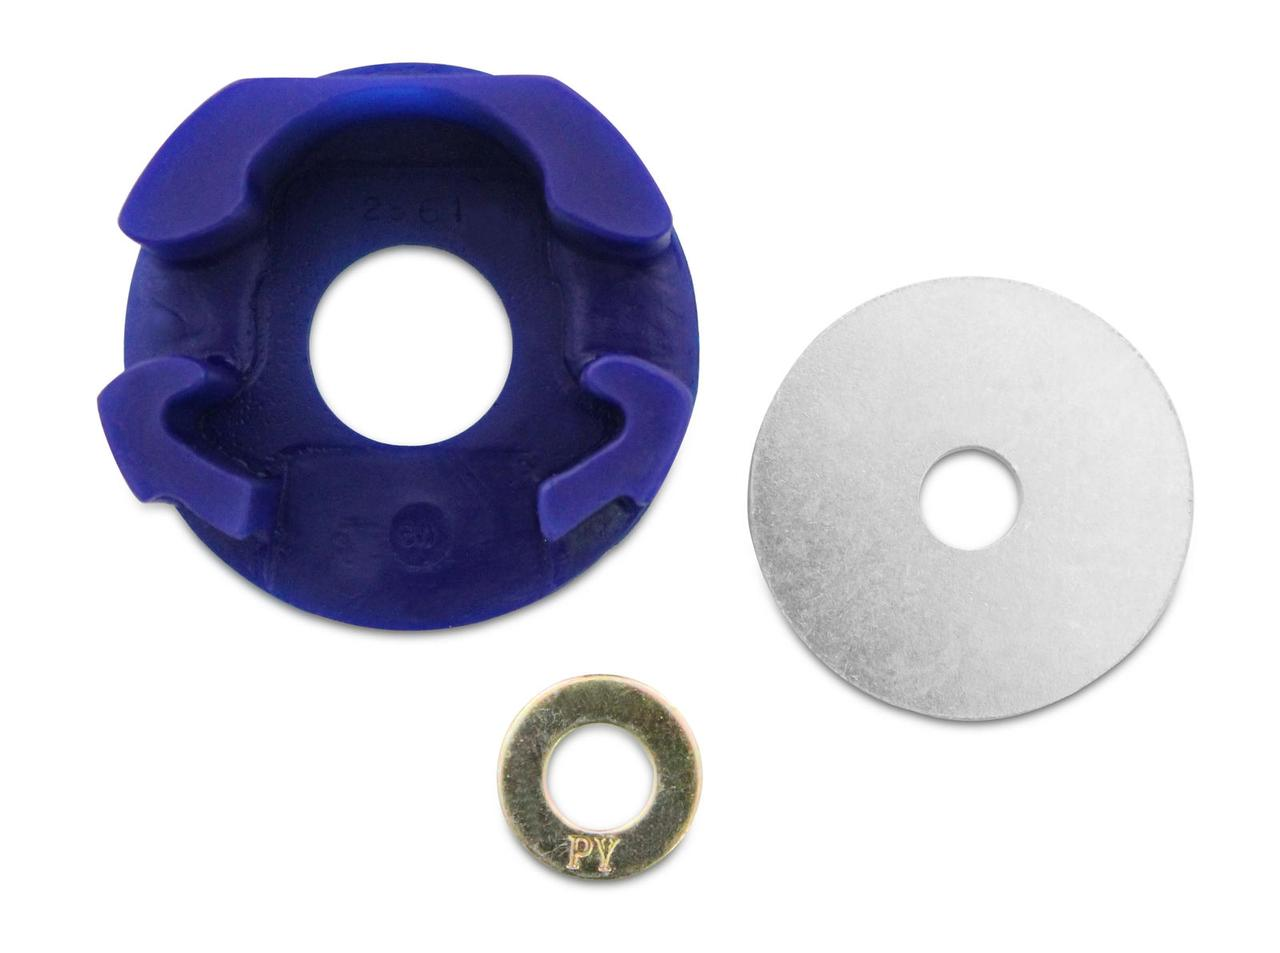 Seat Leon Torque Arm Lower Insert Bush Kit: Standard Replacement - Up to Mid-2008 Models